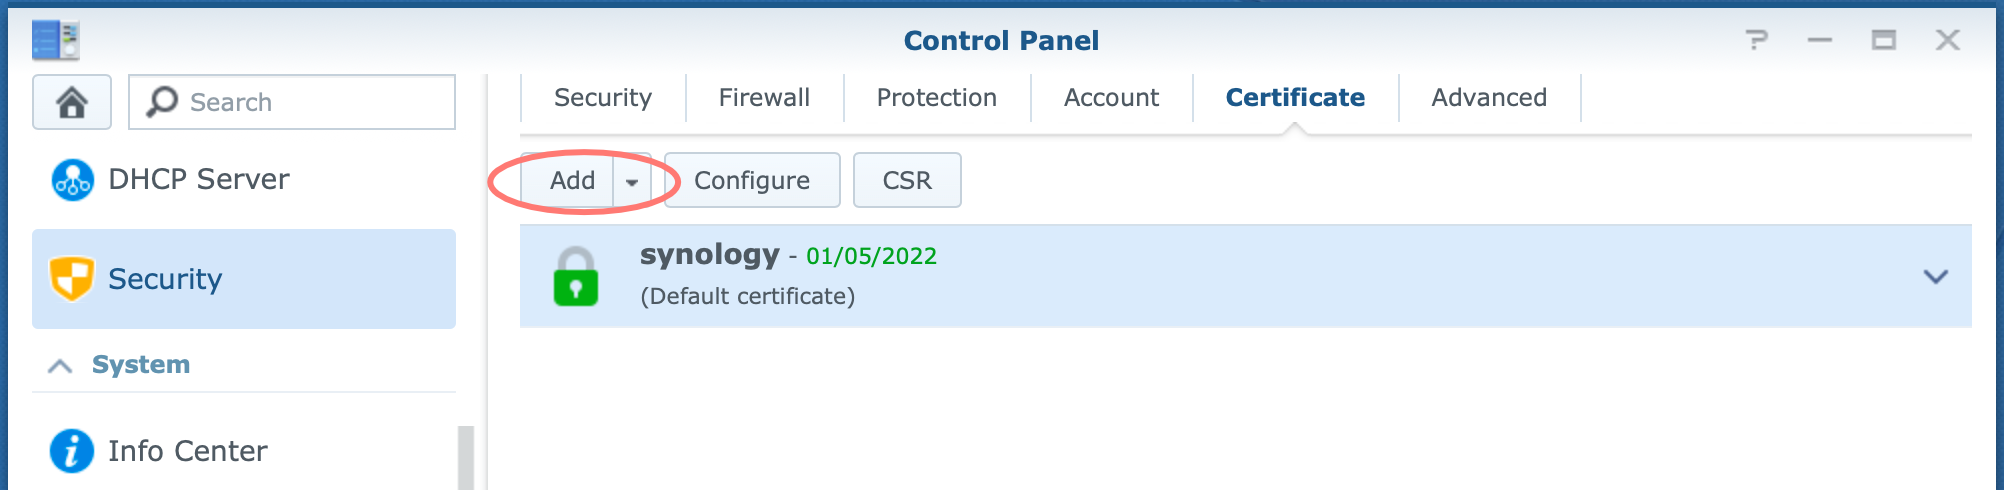 synology, control panel, certificate, add